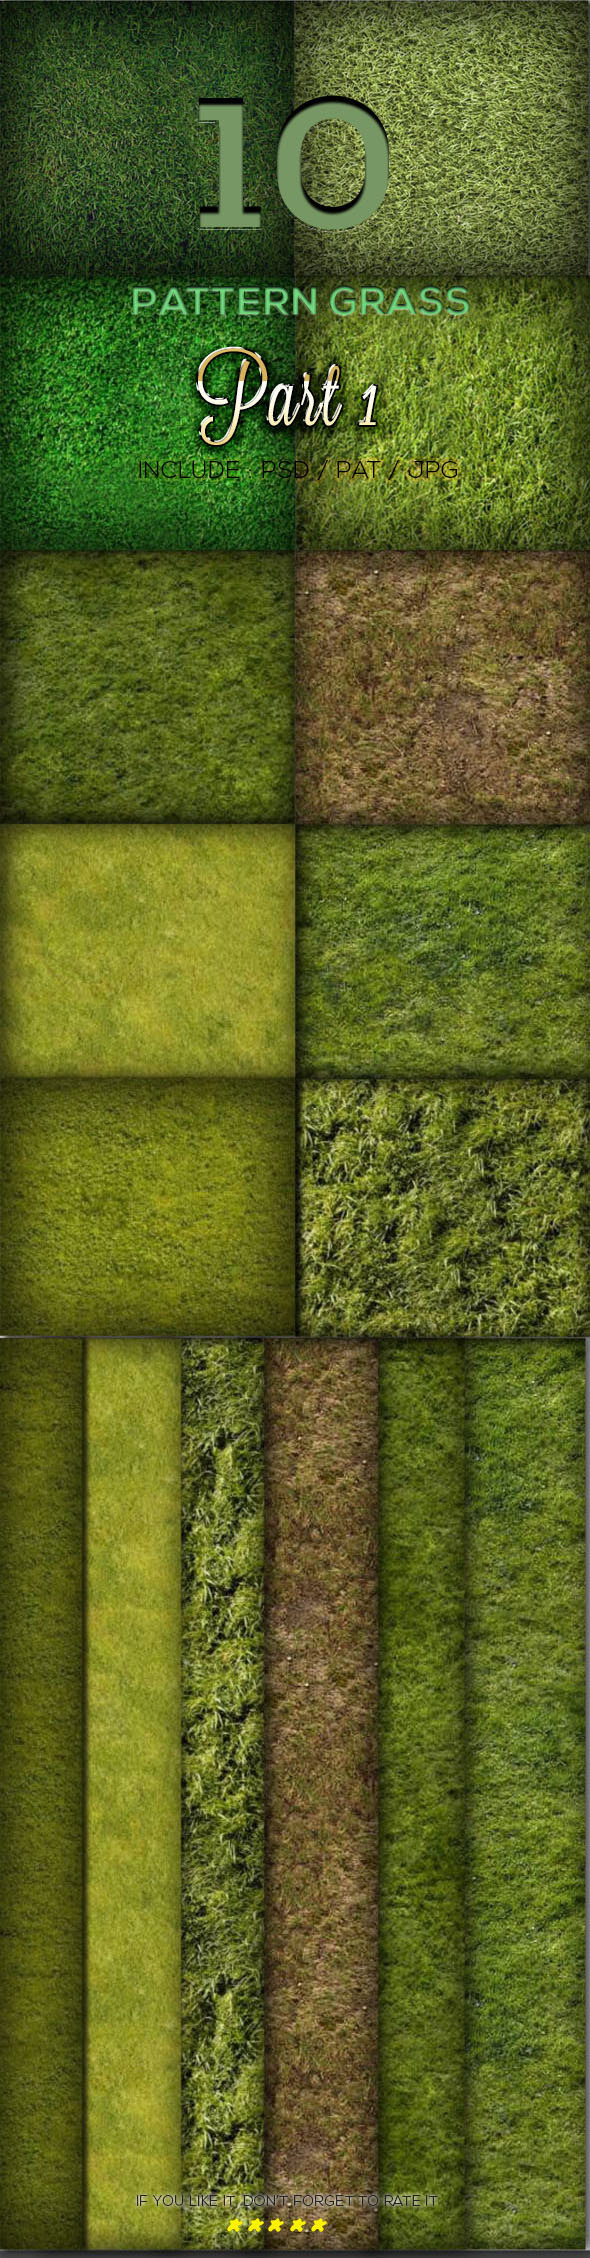 10 Grass Texture Pattern Part 1 - Textures / Fills / Patterns Photoshop